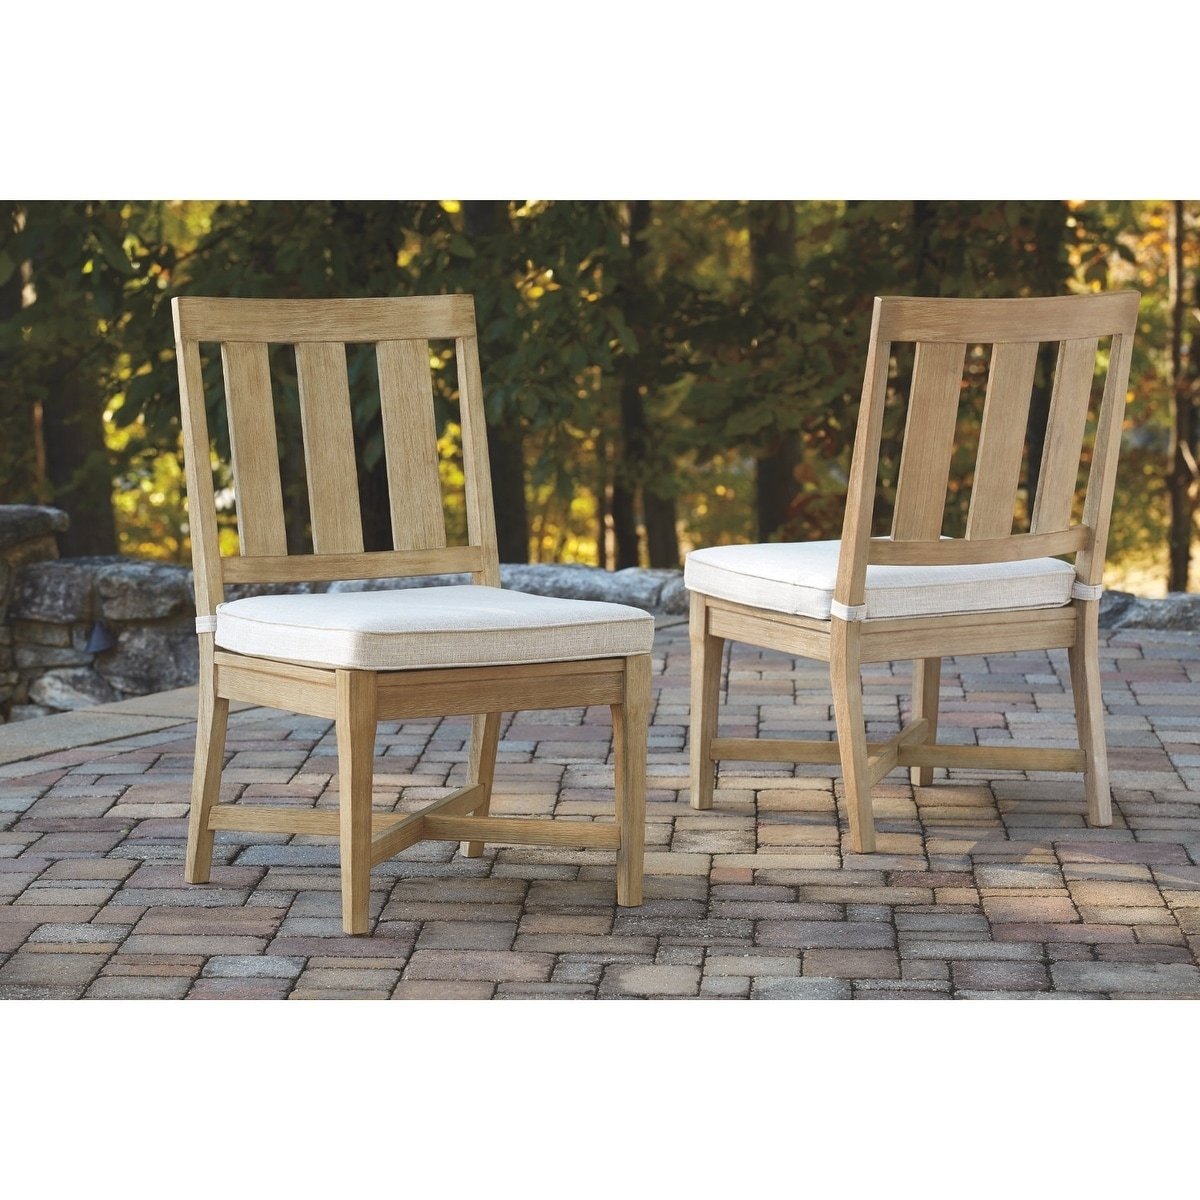 Shop Ashley Furniture Signature Design Clare View Outdoor Chair With